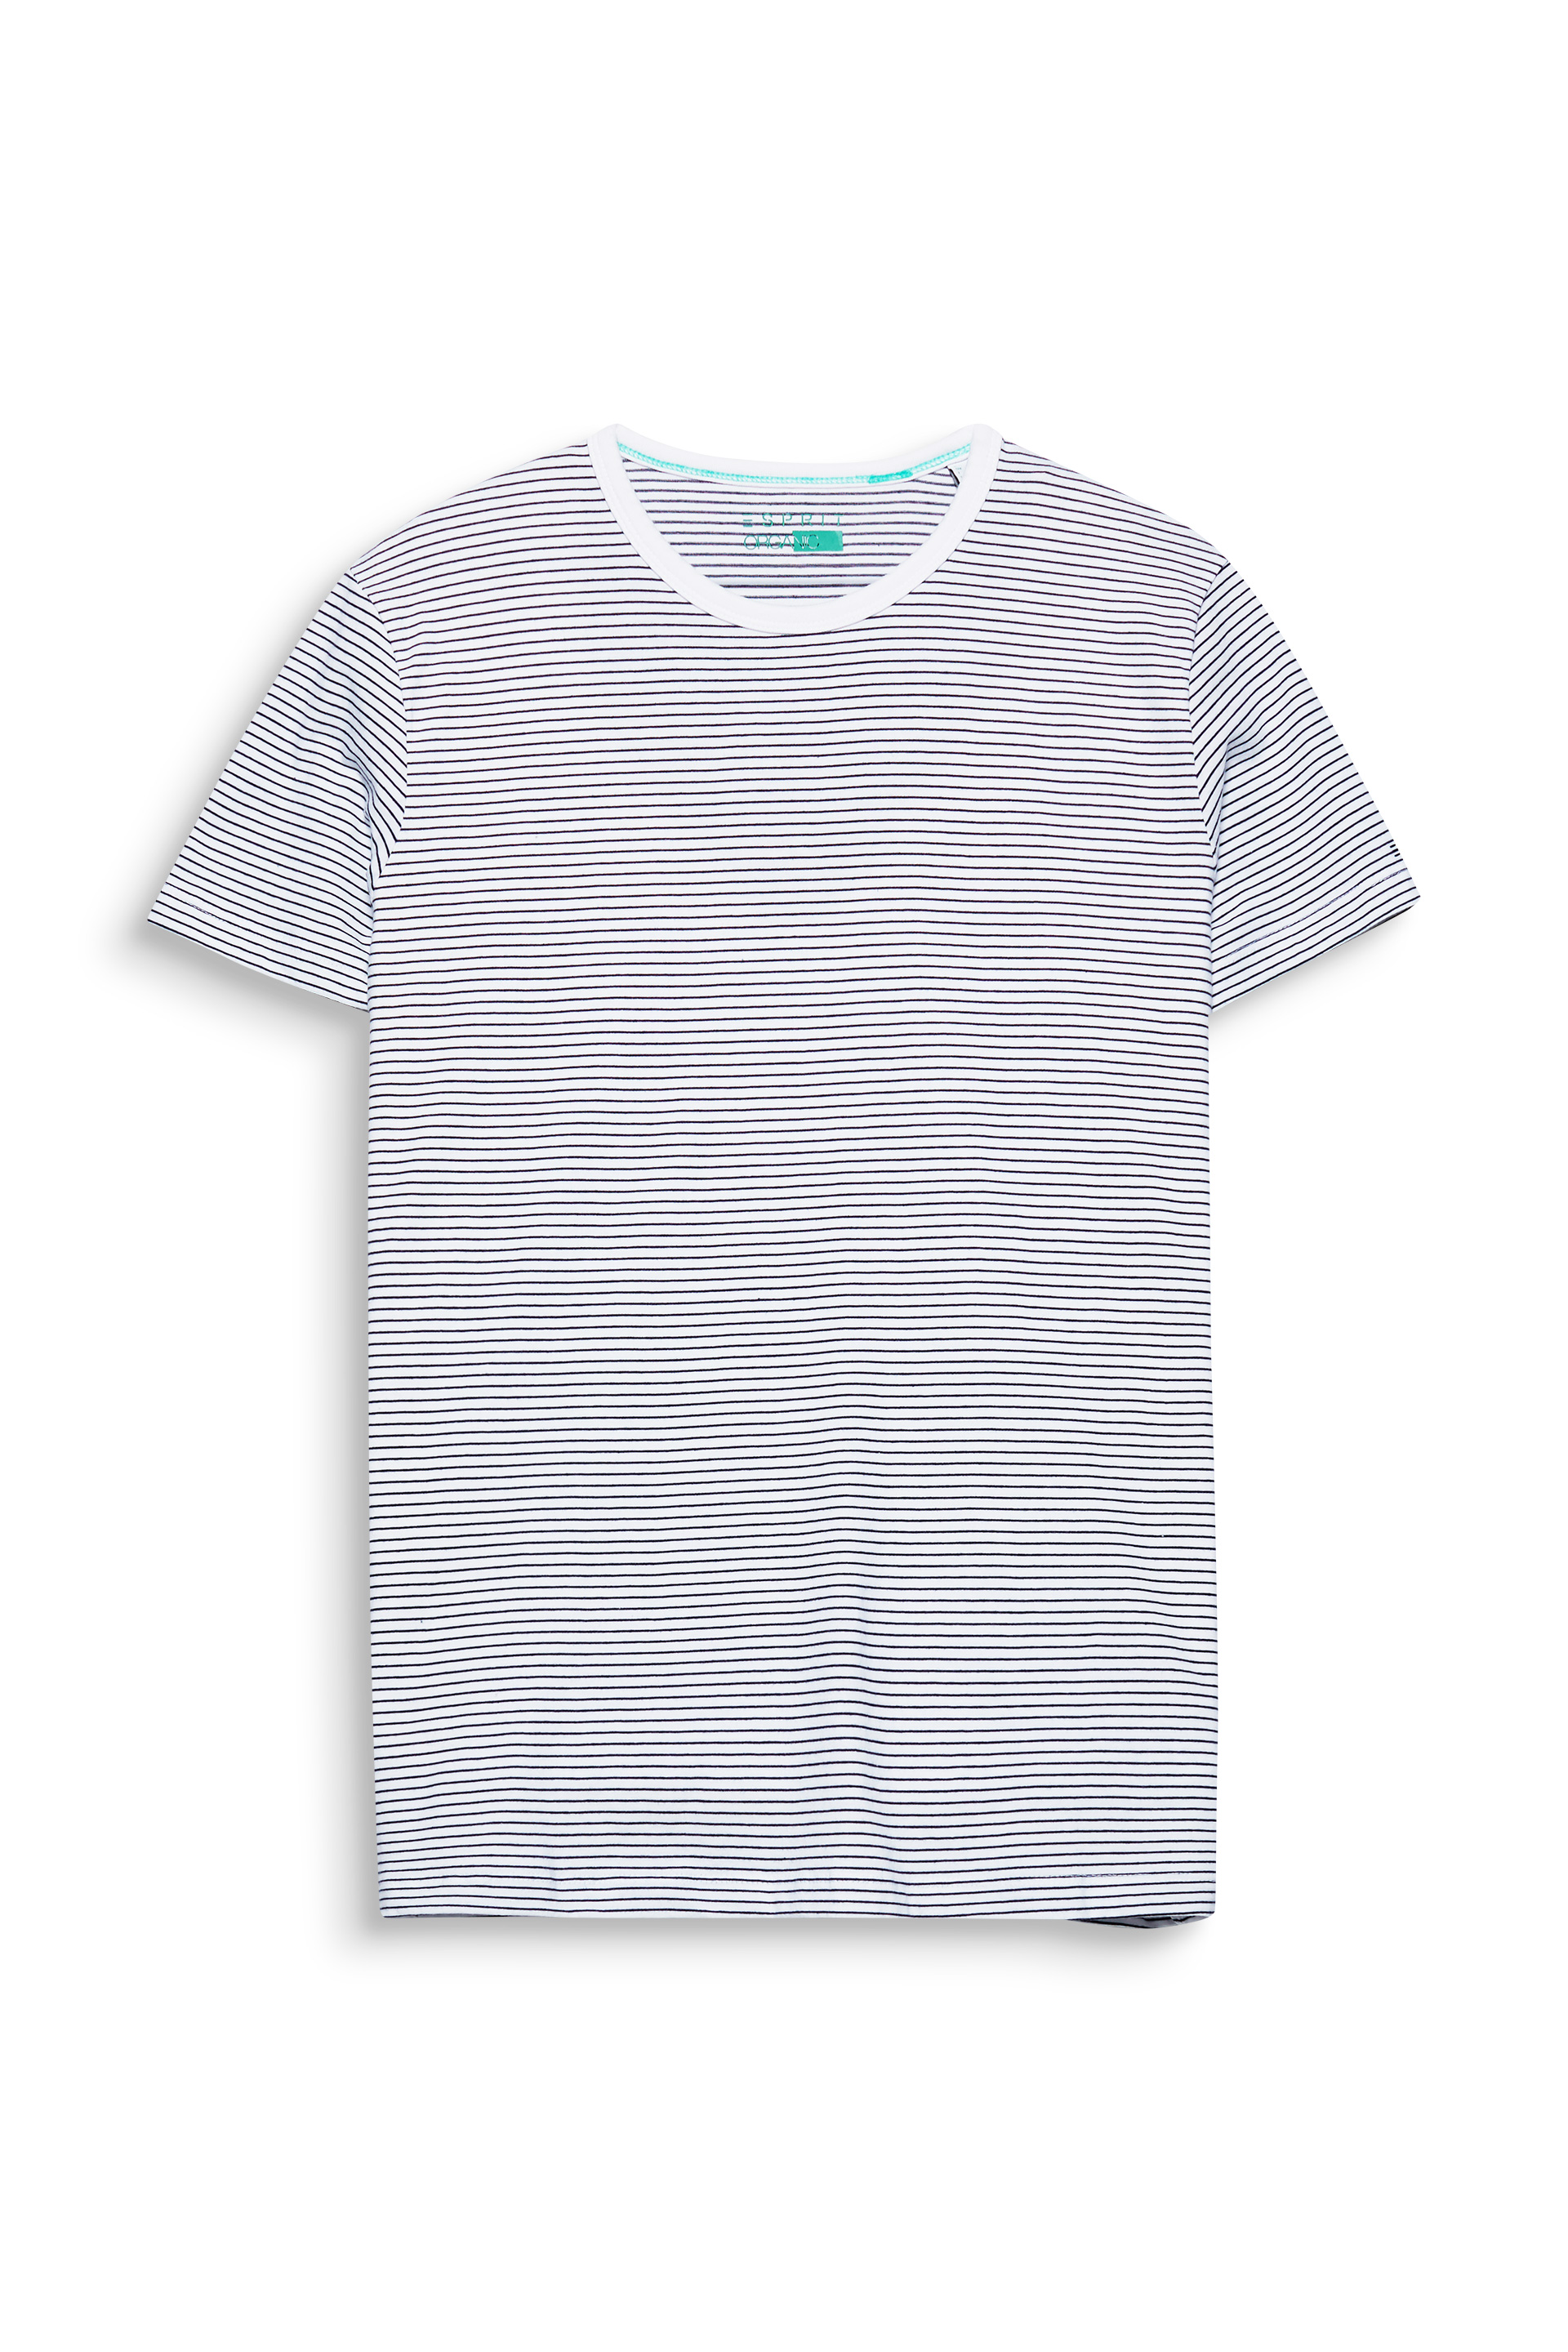 Esprit White101 Striped T-shirt In Organic Cotton